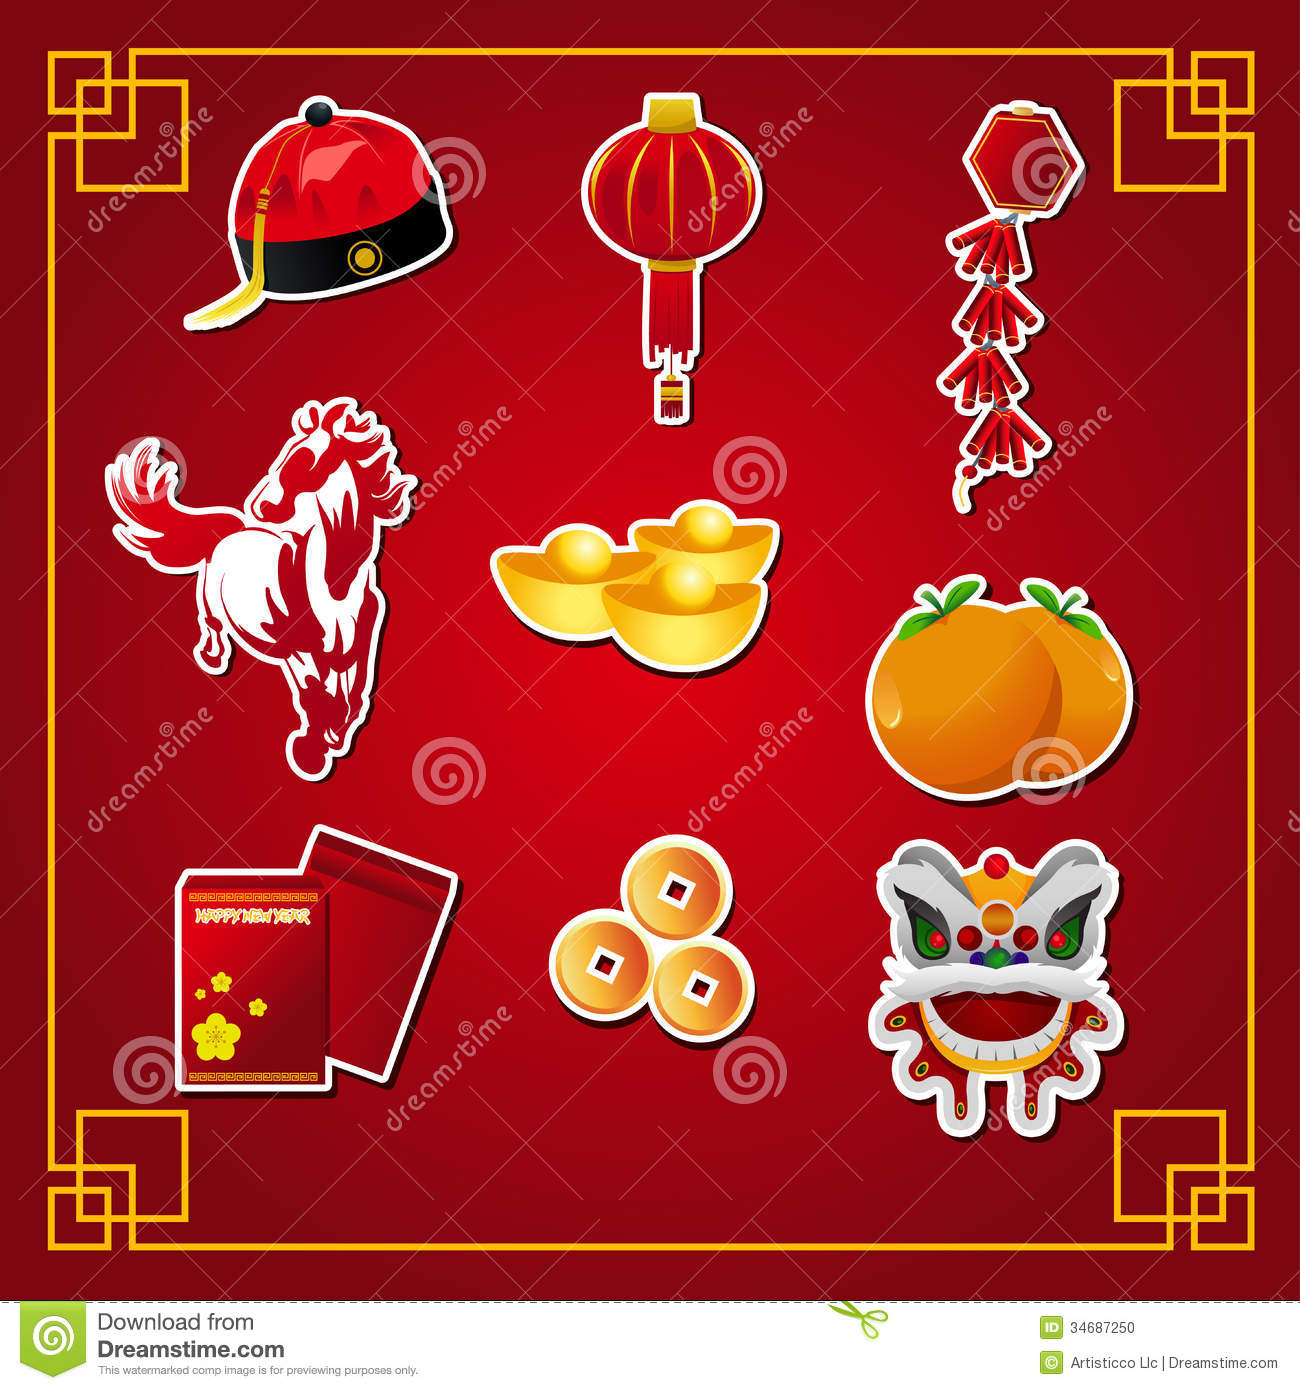 Chinese Calendar Illustration : Chinese new year icons stock vector image of gold